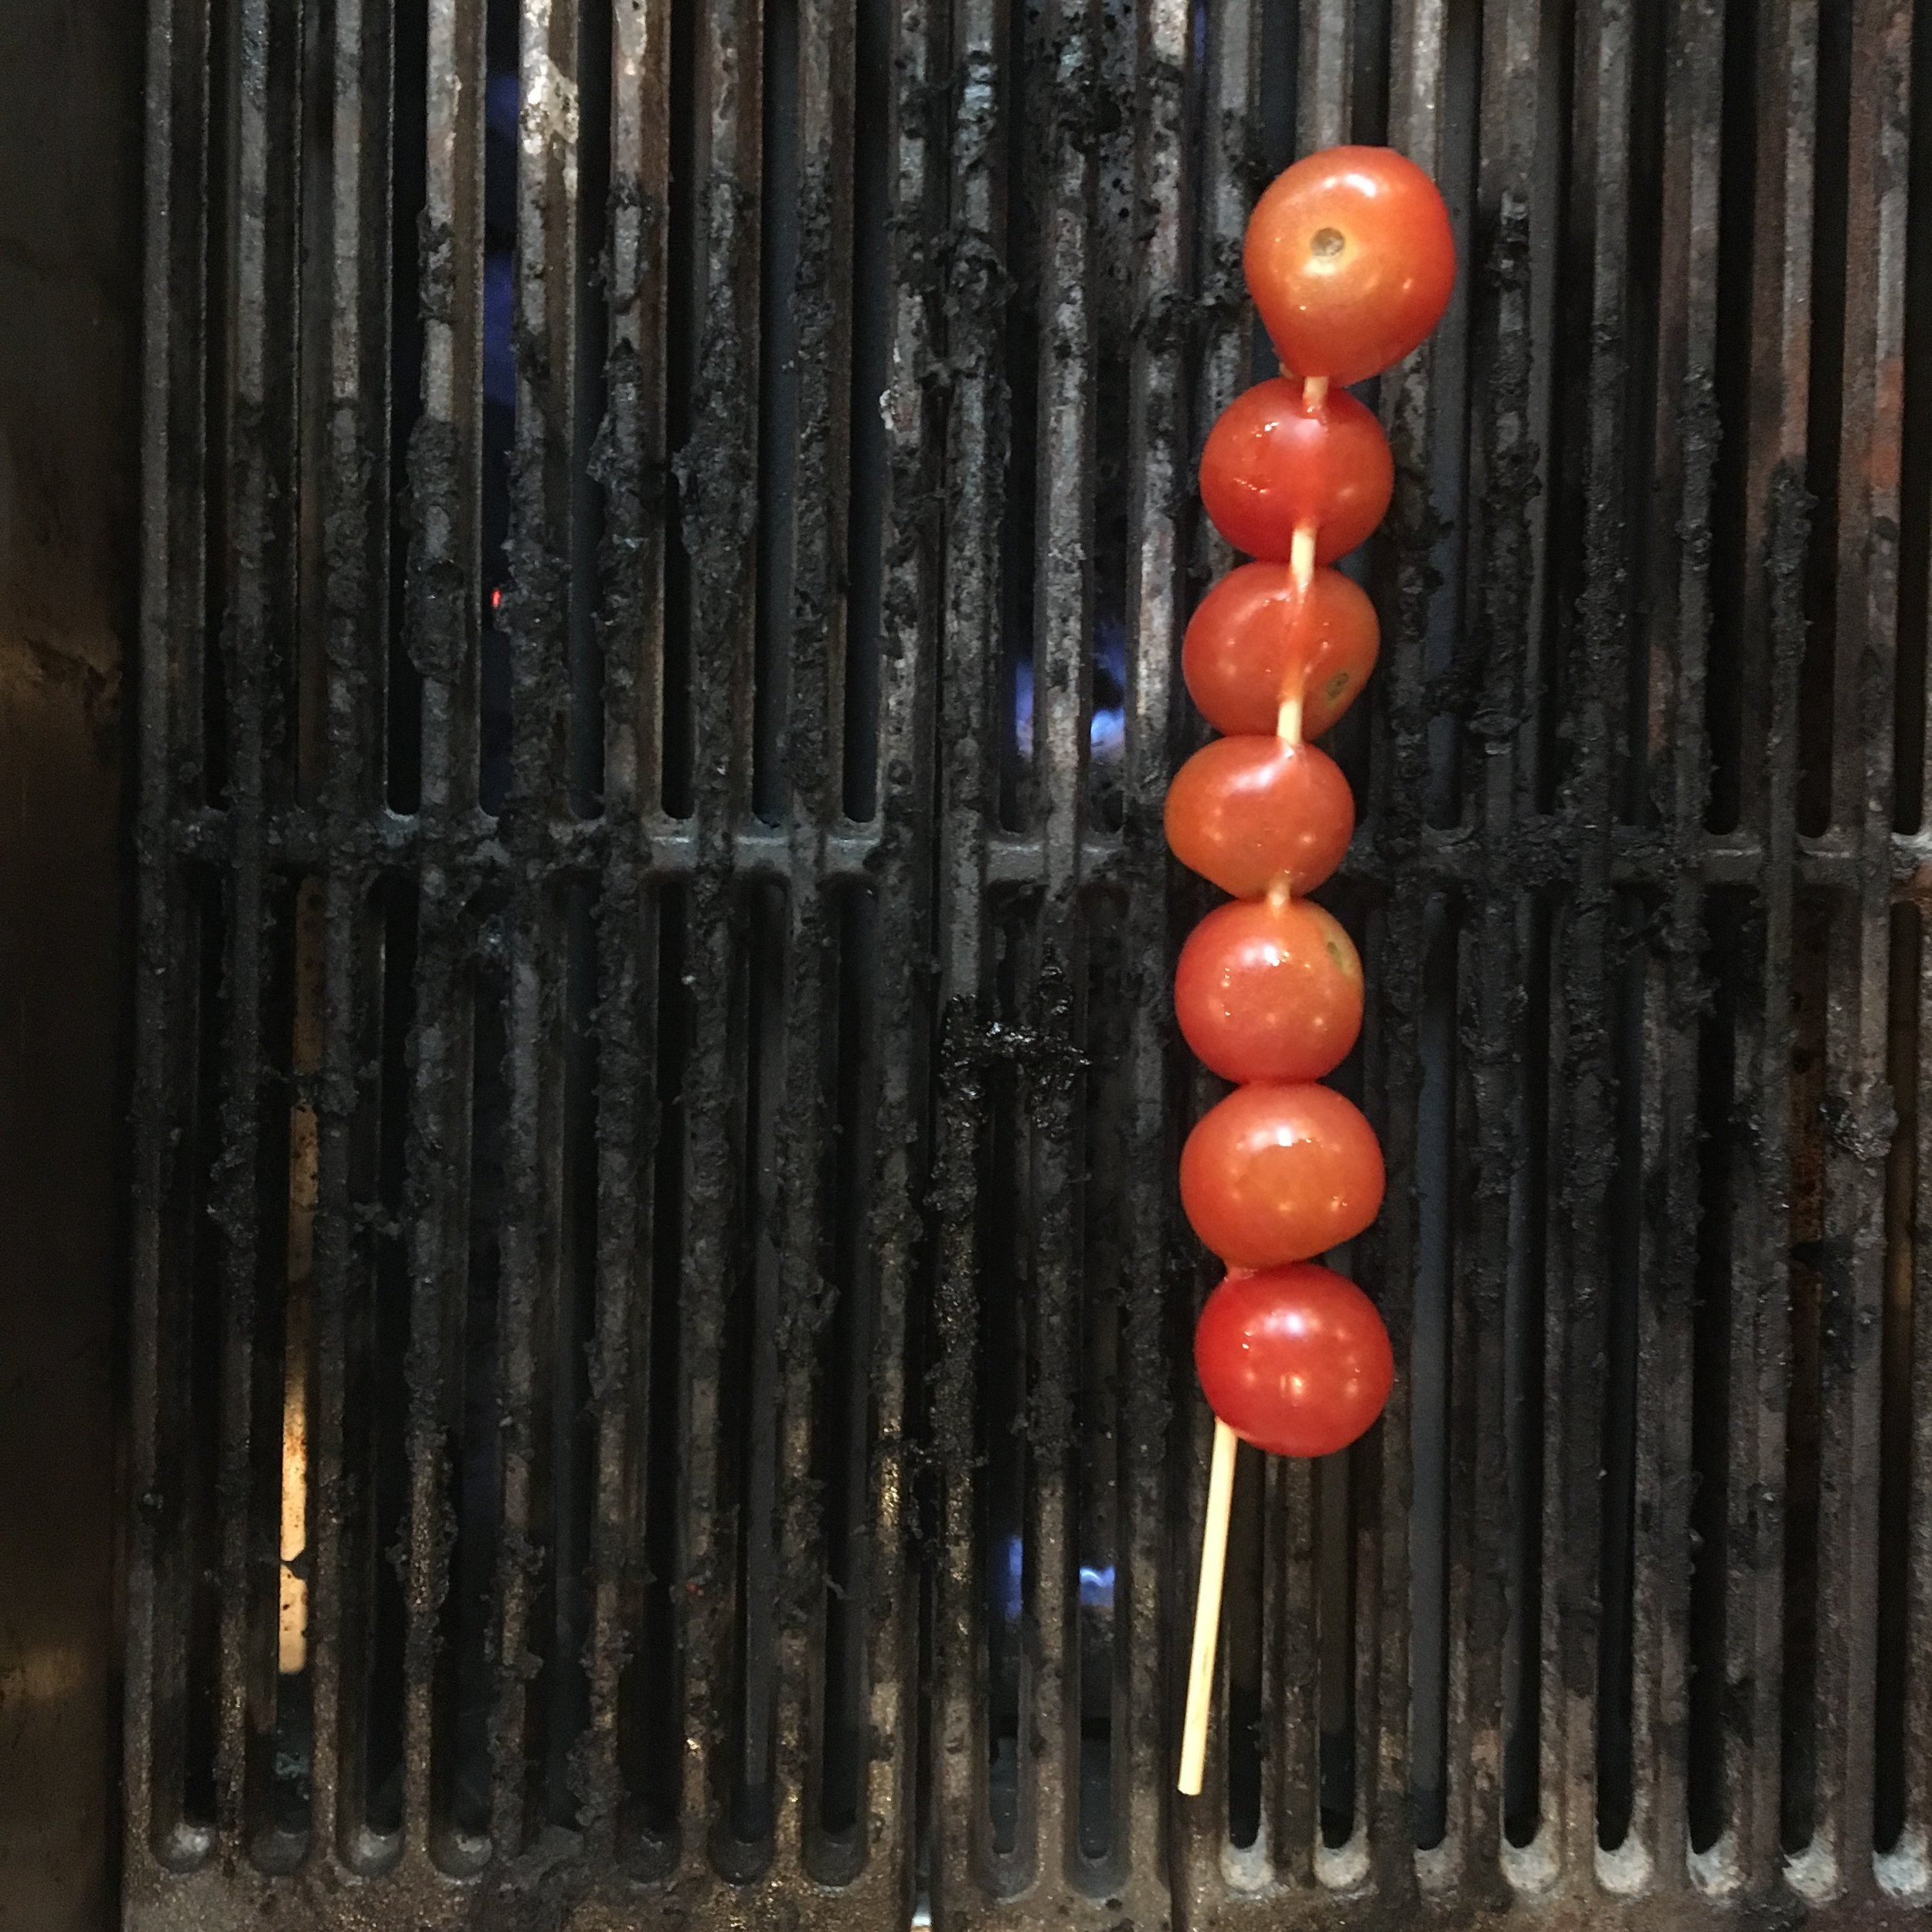 tomatogrill.JPG